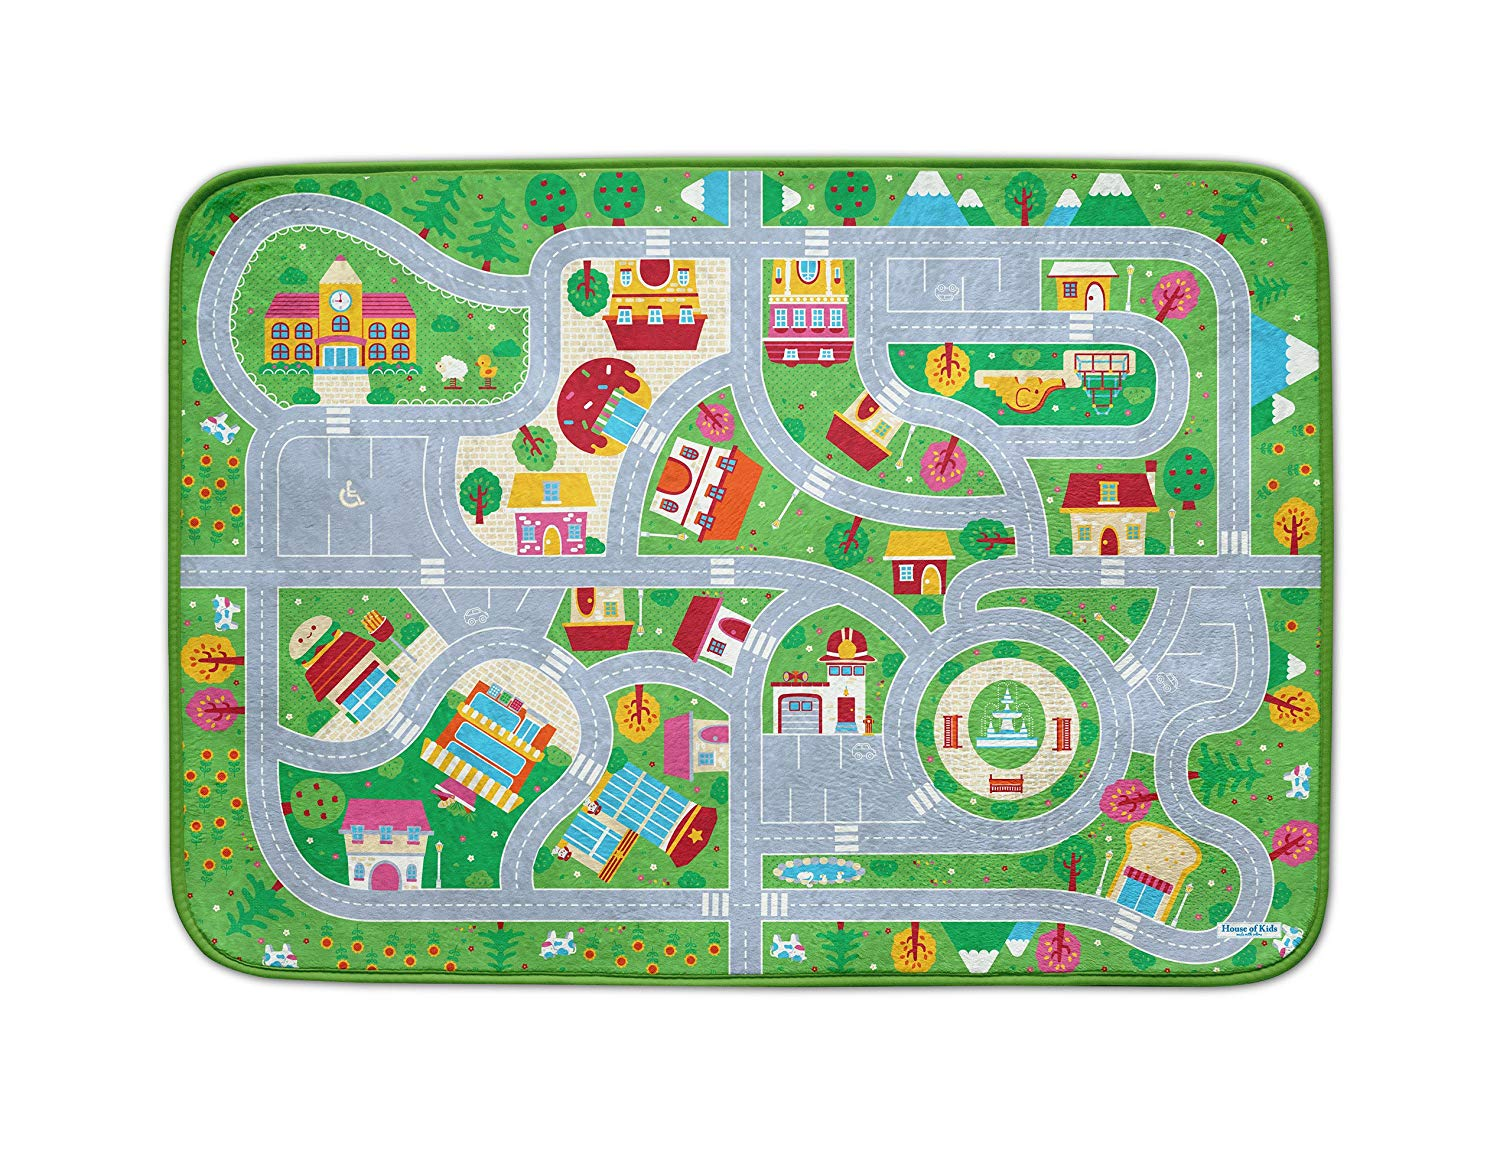 House of Kids 88247, polyester, Multicolored, 95 x 0,5 x 70 cm